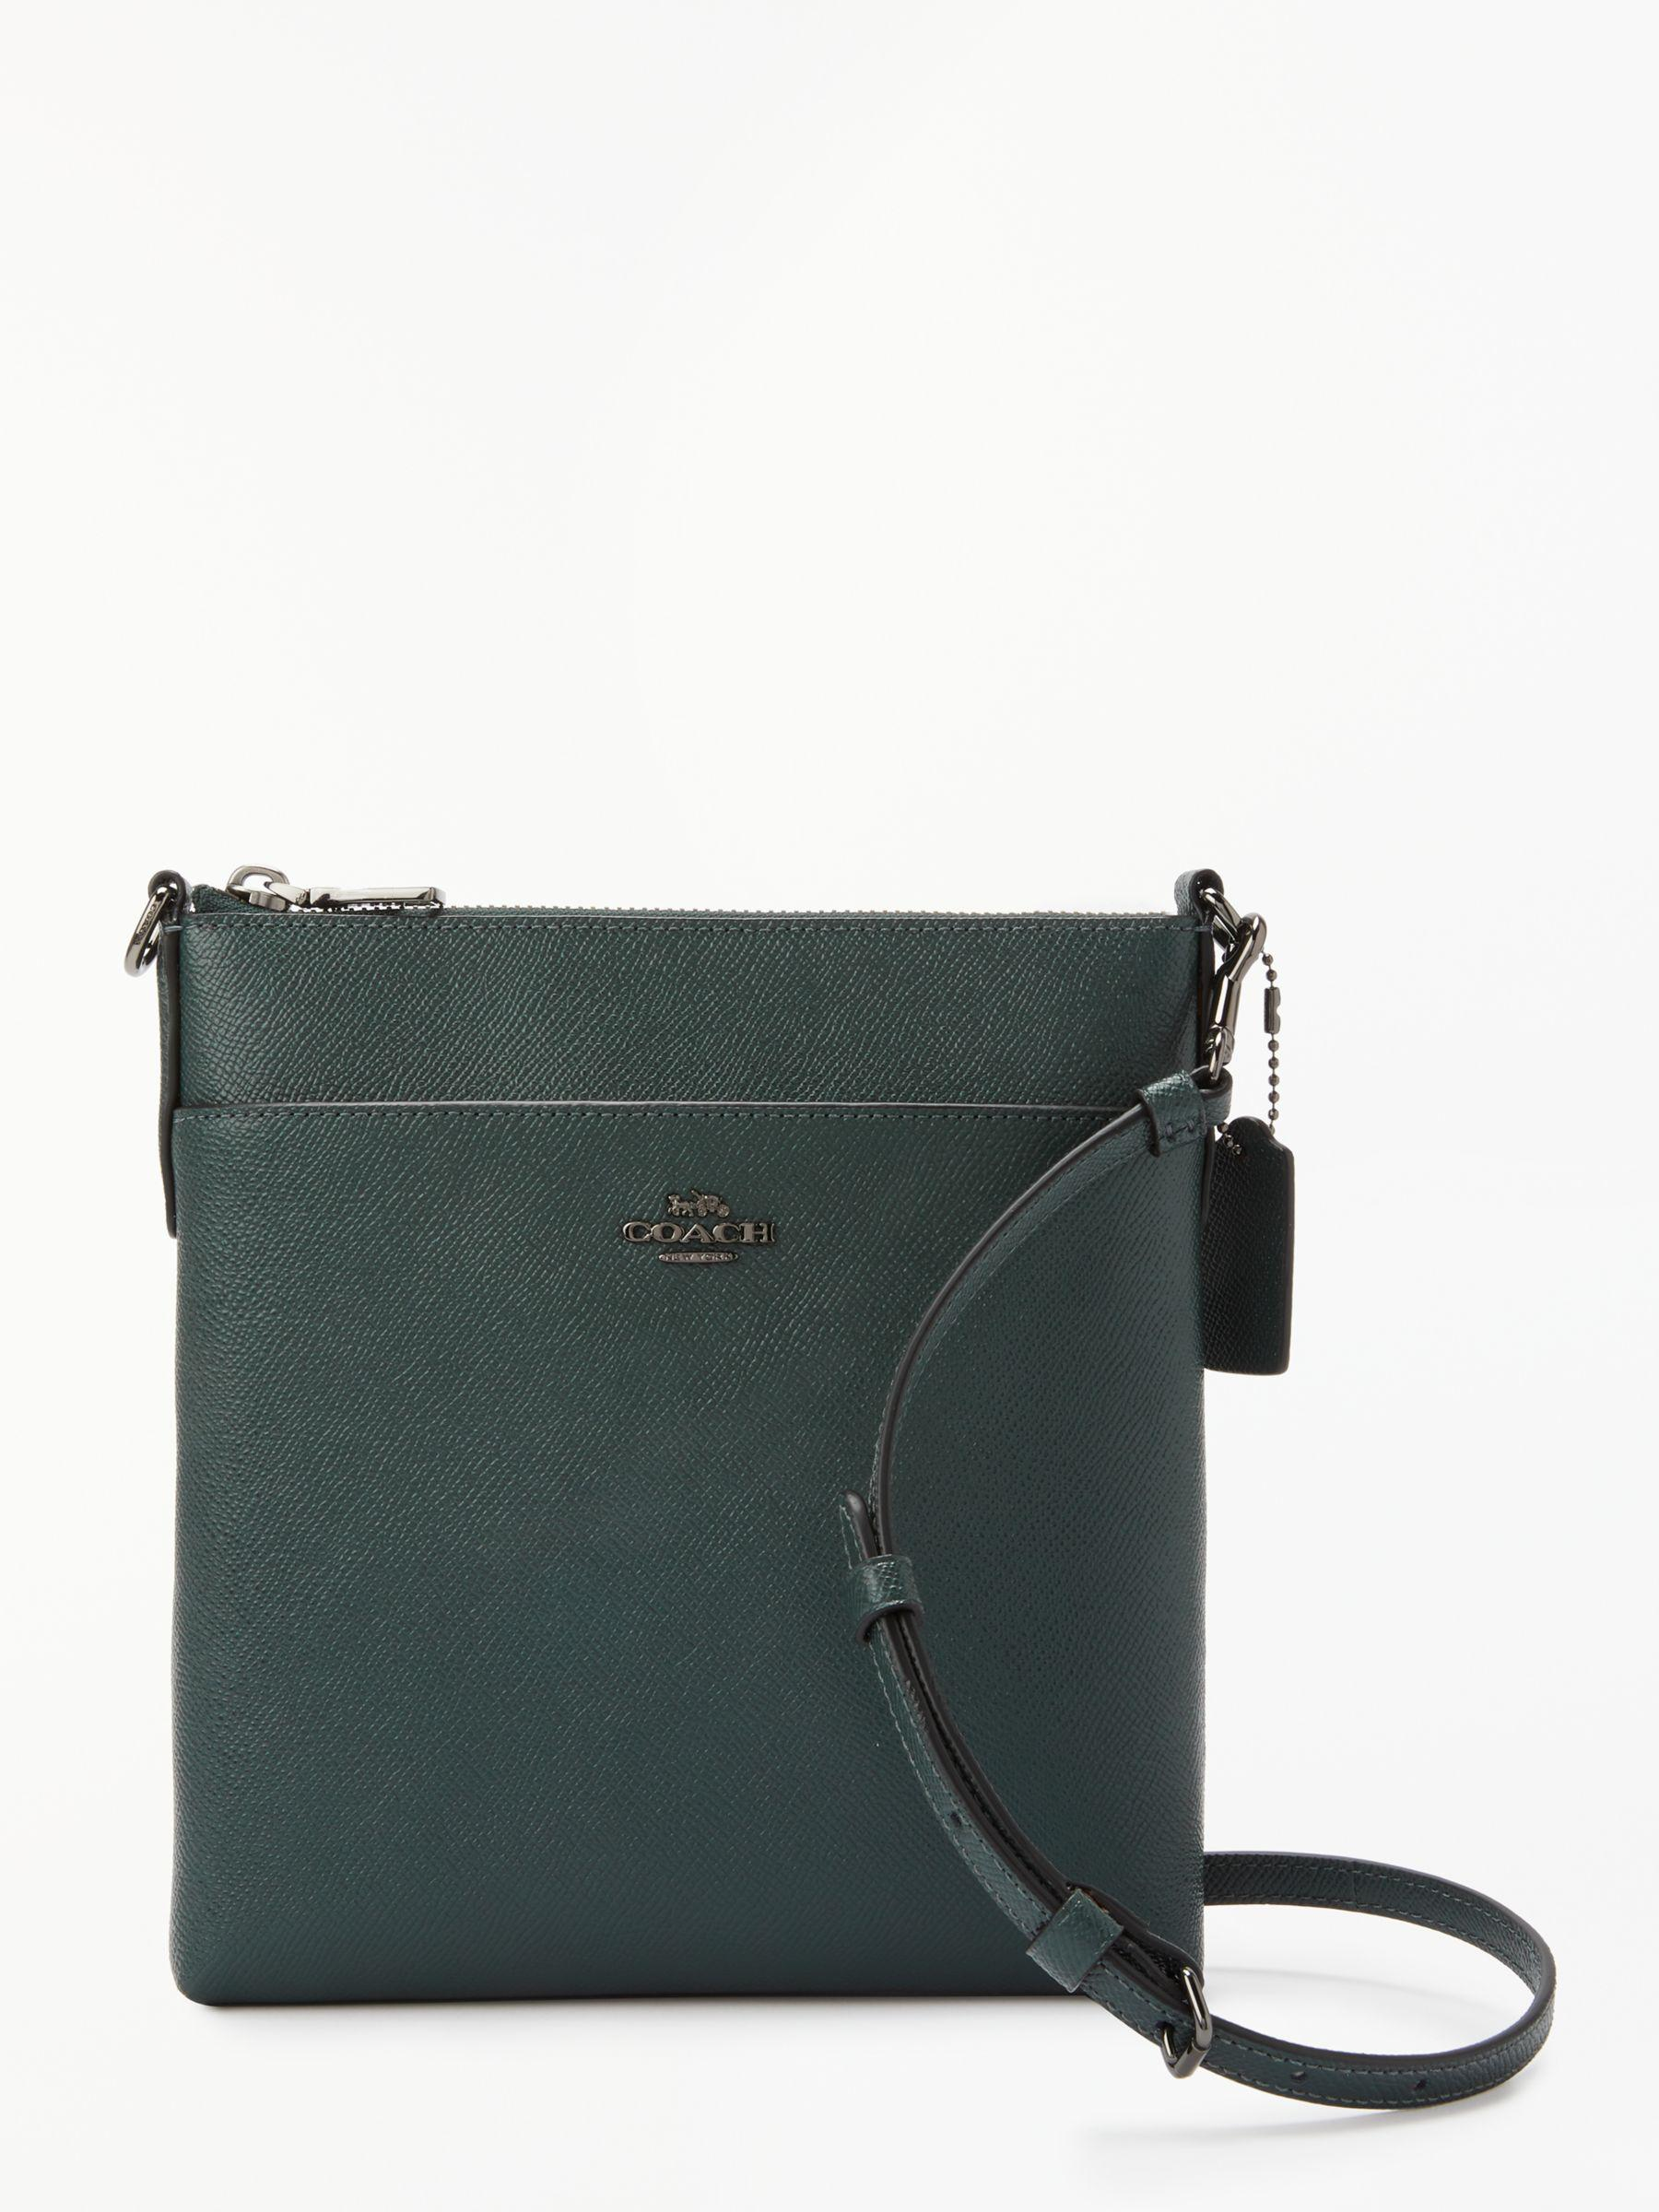 2ebabe2927f1 COACH Messenger Leather Cross Body Bag in Green - Lyst